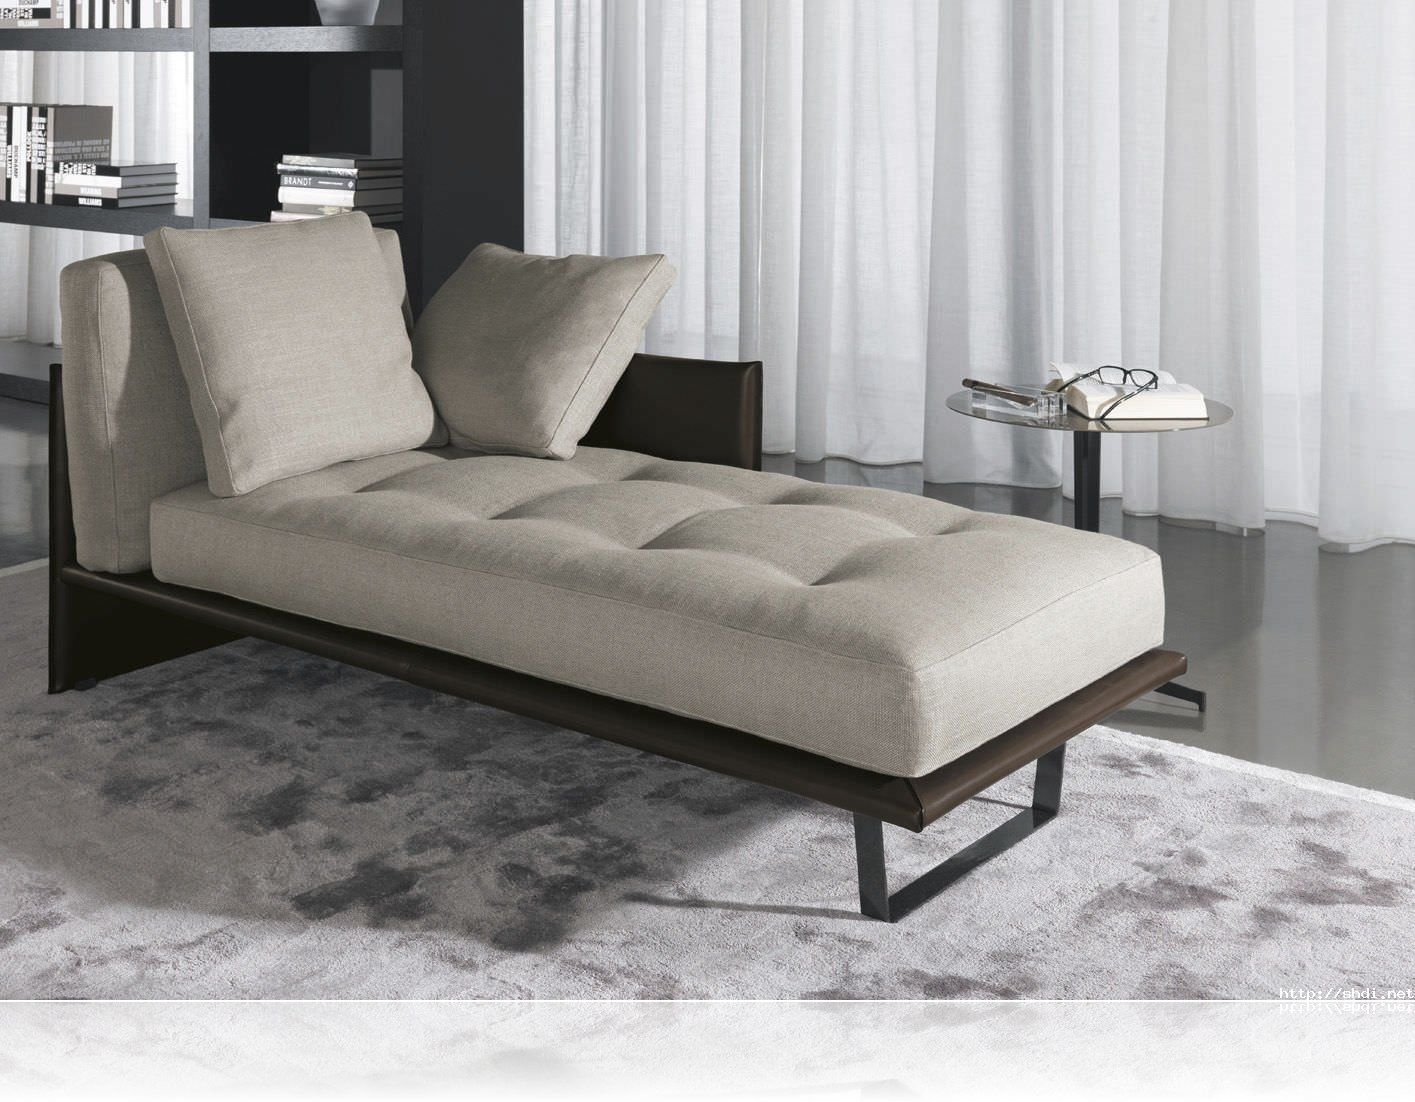 Loveable stylish modern daybed for bedroom decorating modern trundle daybed modern daybed